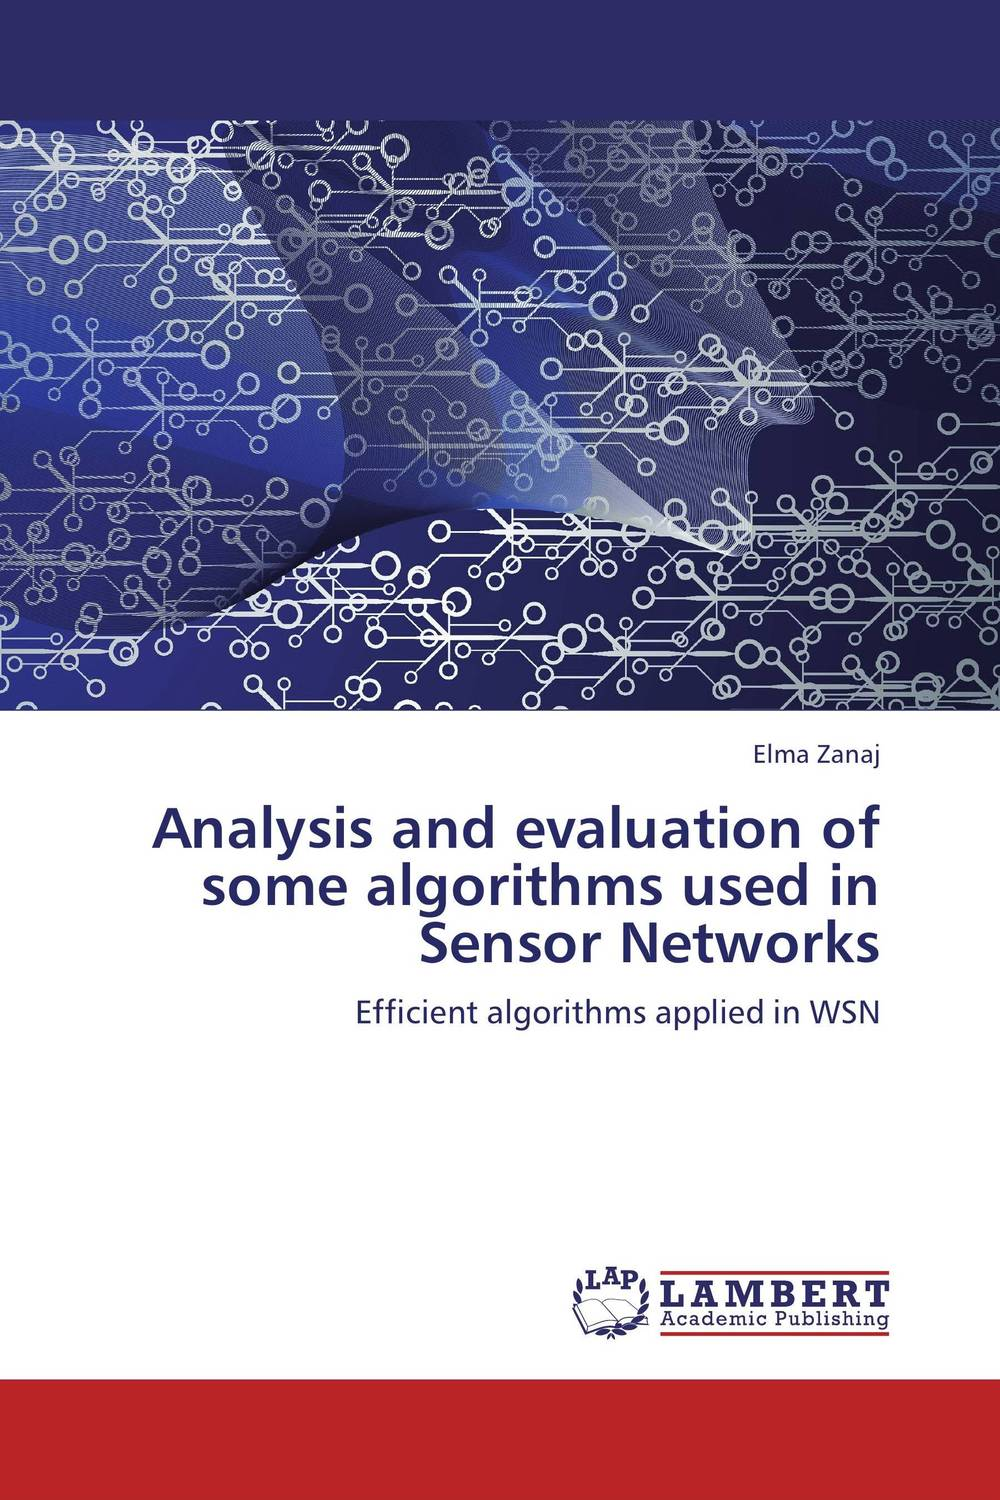 Analysis and evaluation of some algorithms used in Sensor Networks remington groom kit plus pg6150